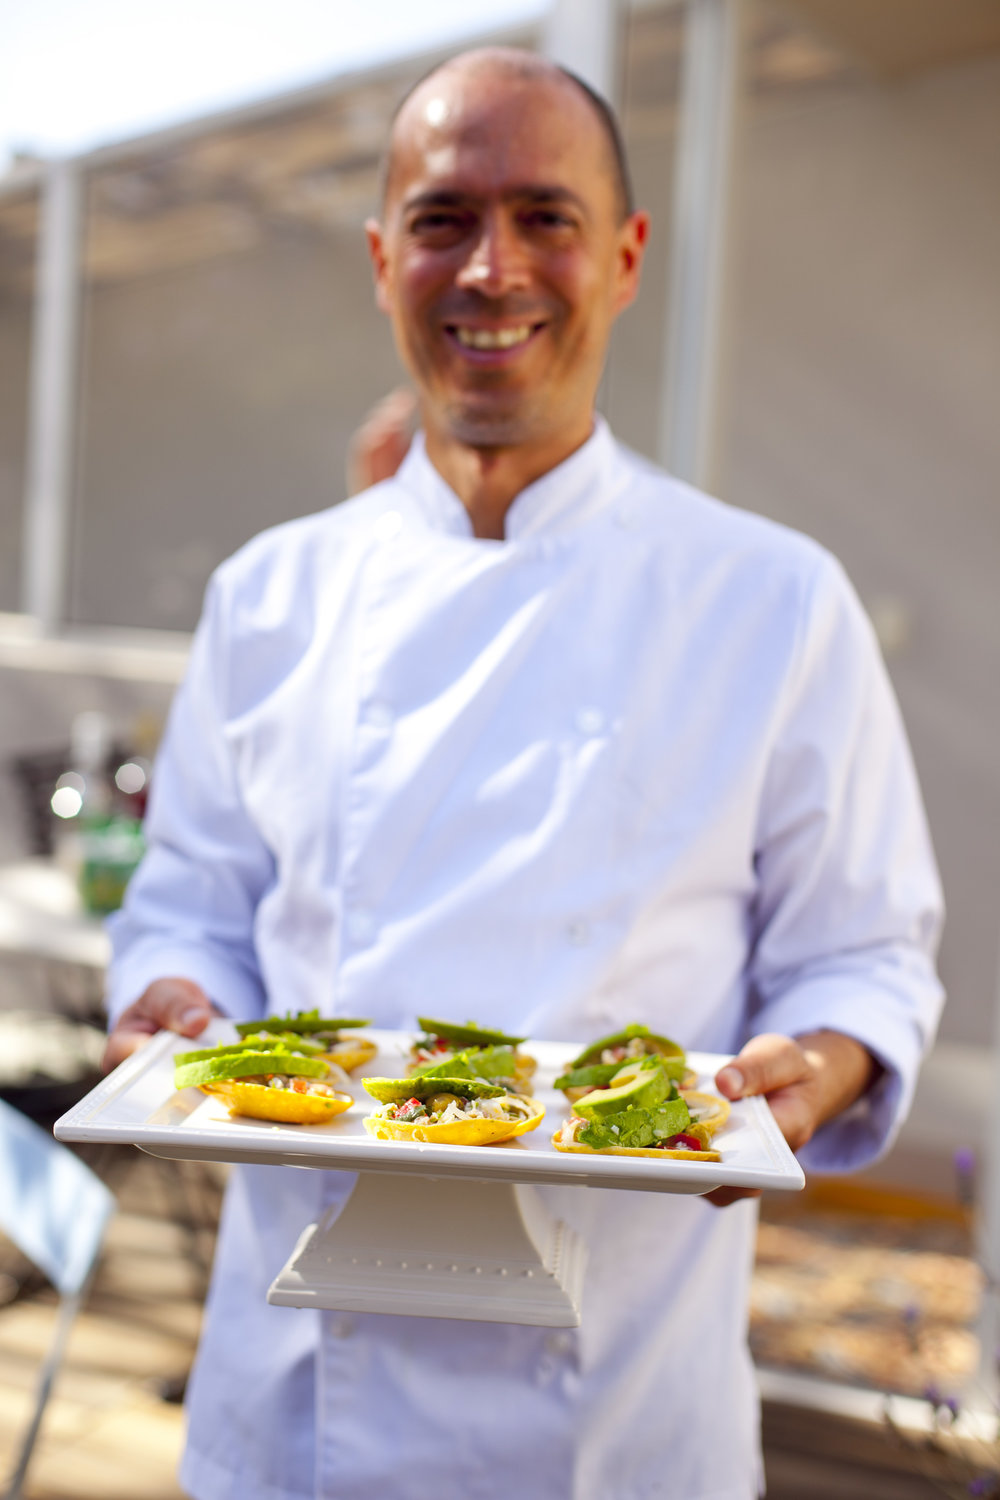 Copy of man serving Ceviche Tostadas